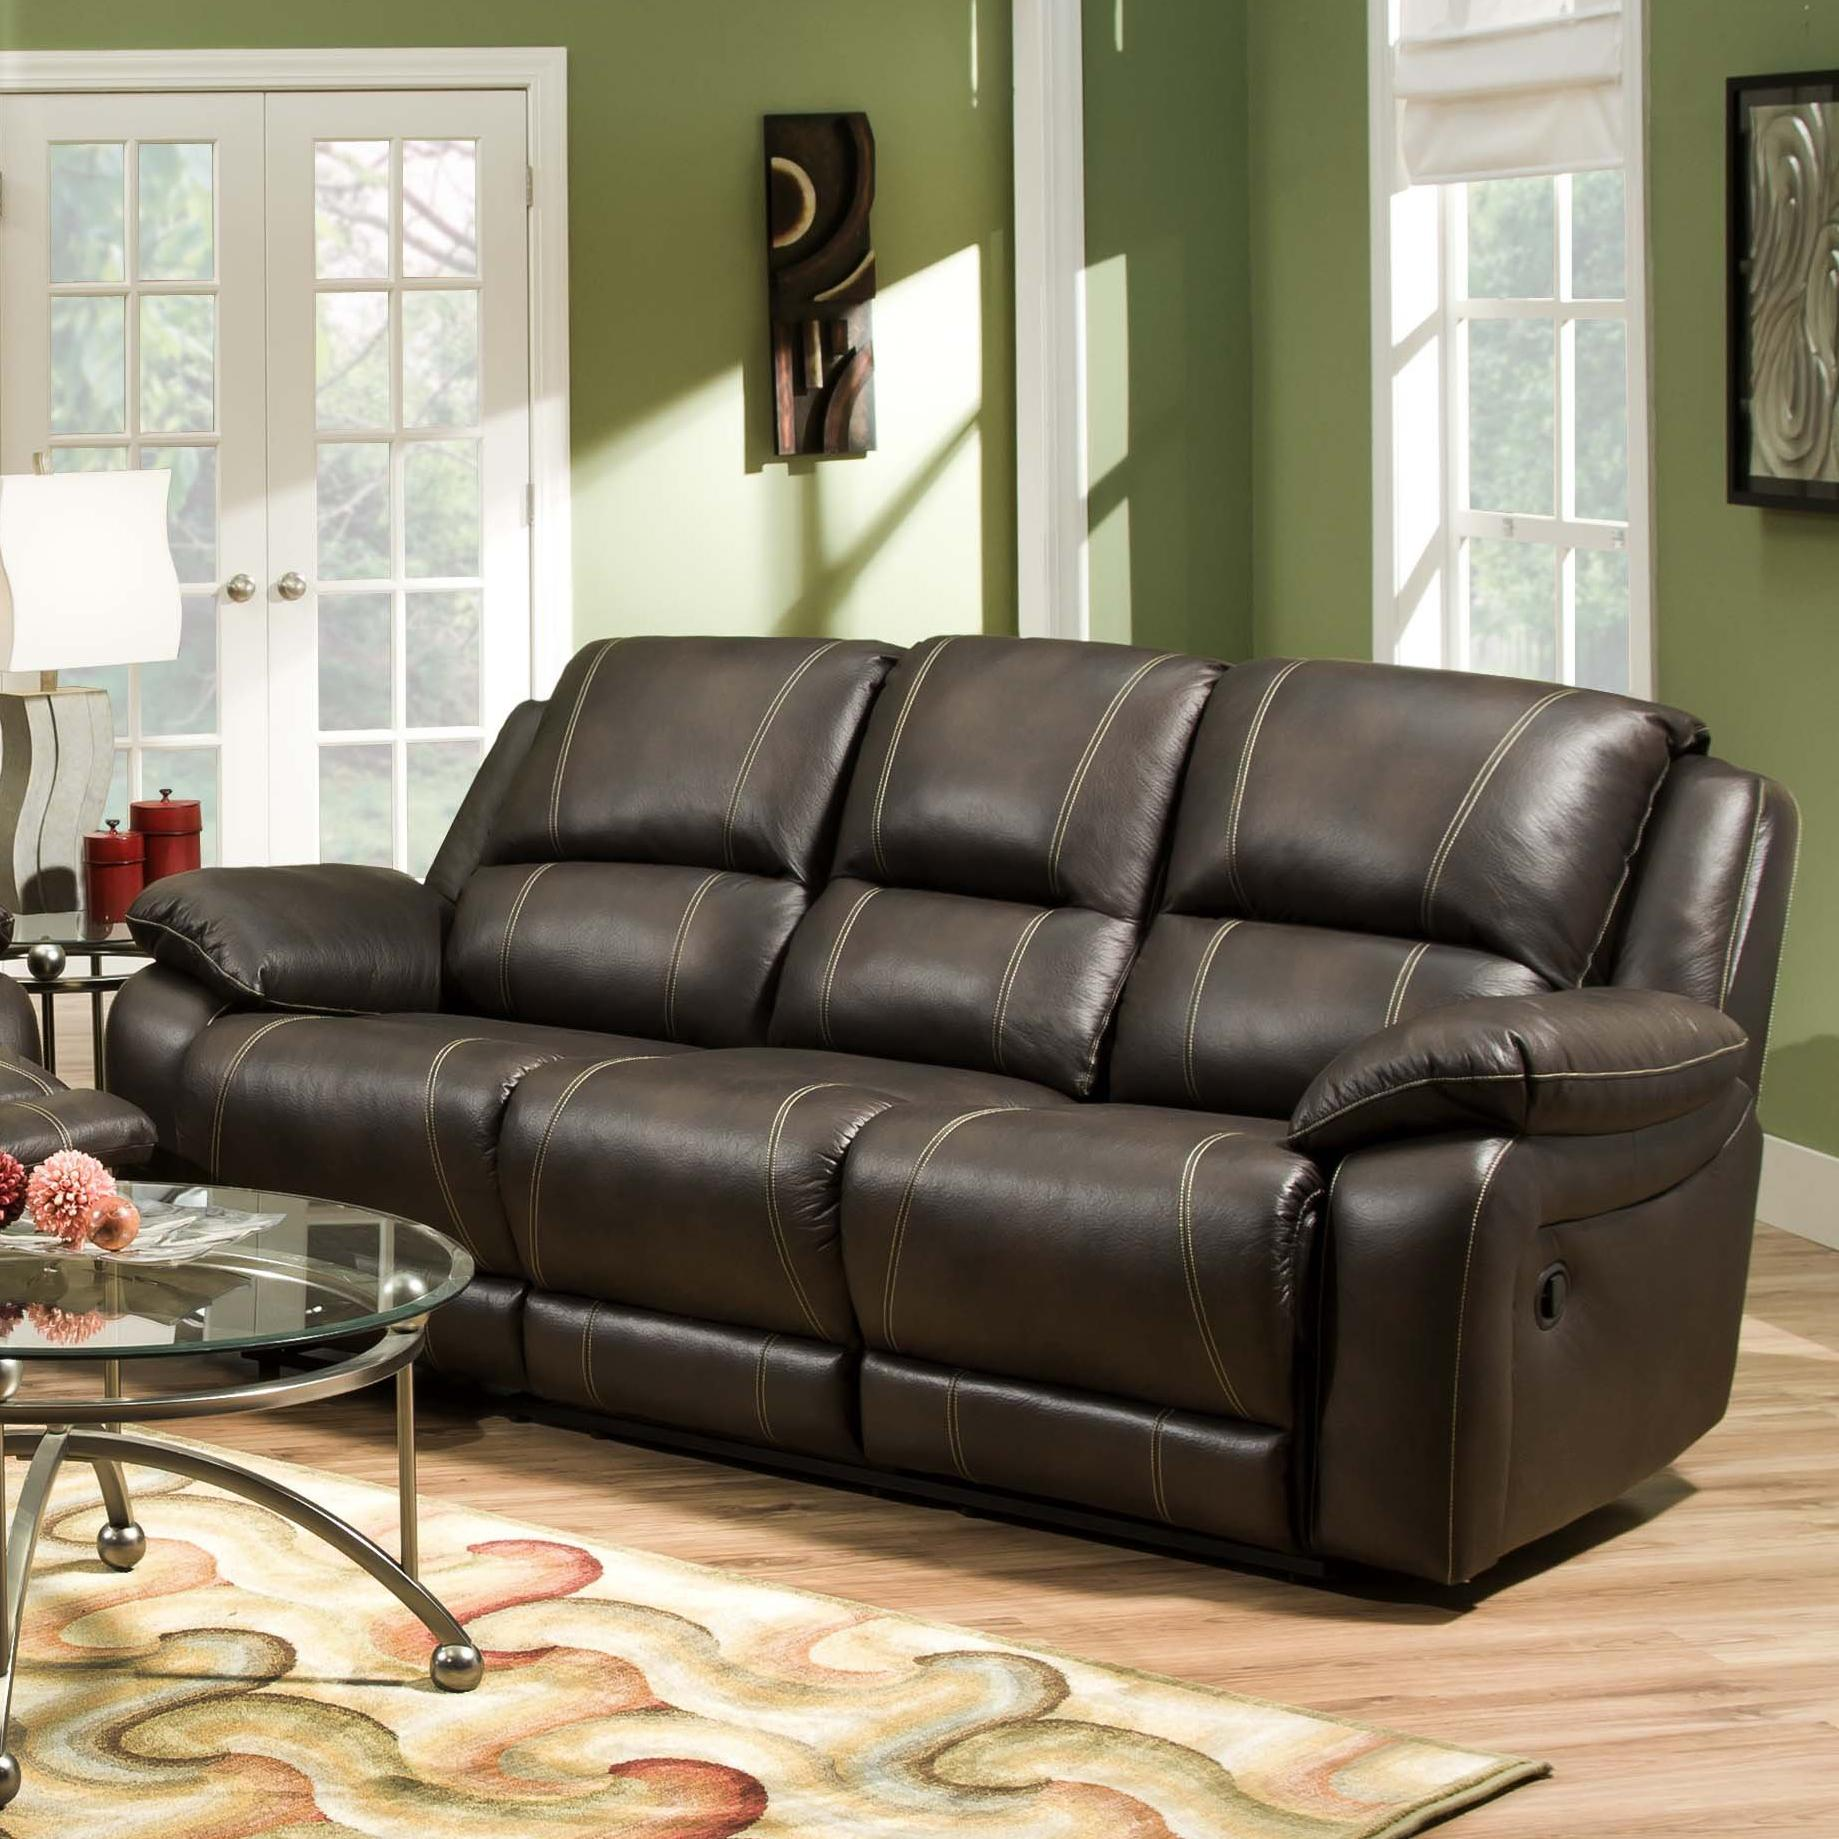 660 Casual Double Motion Sofa by United Furniture Industries at Dream Home Interiors